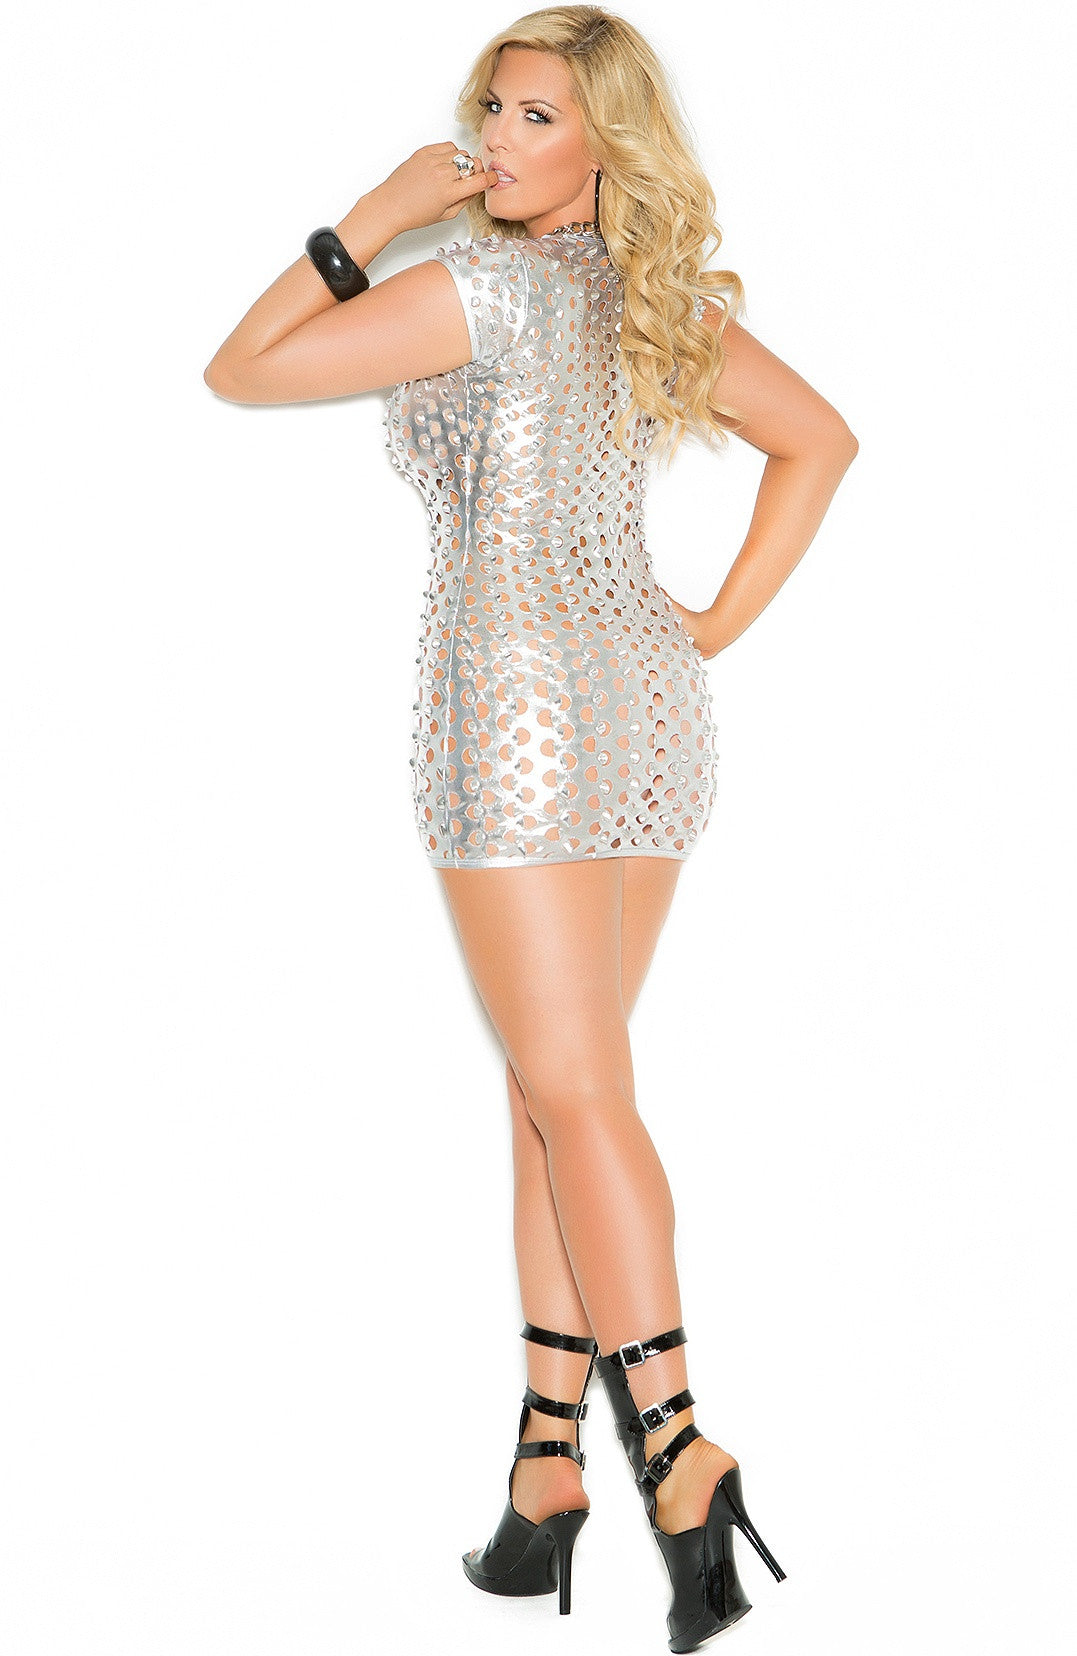 EM-8302 Silver short mini dress - Sexylingerieland